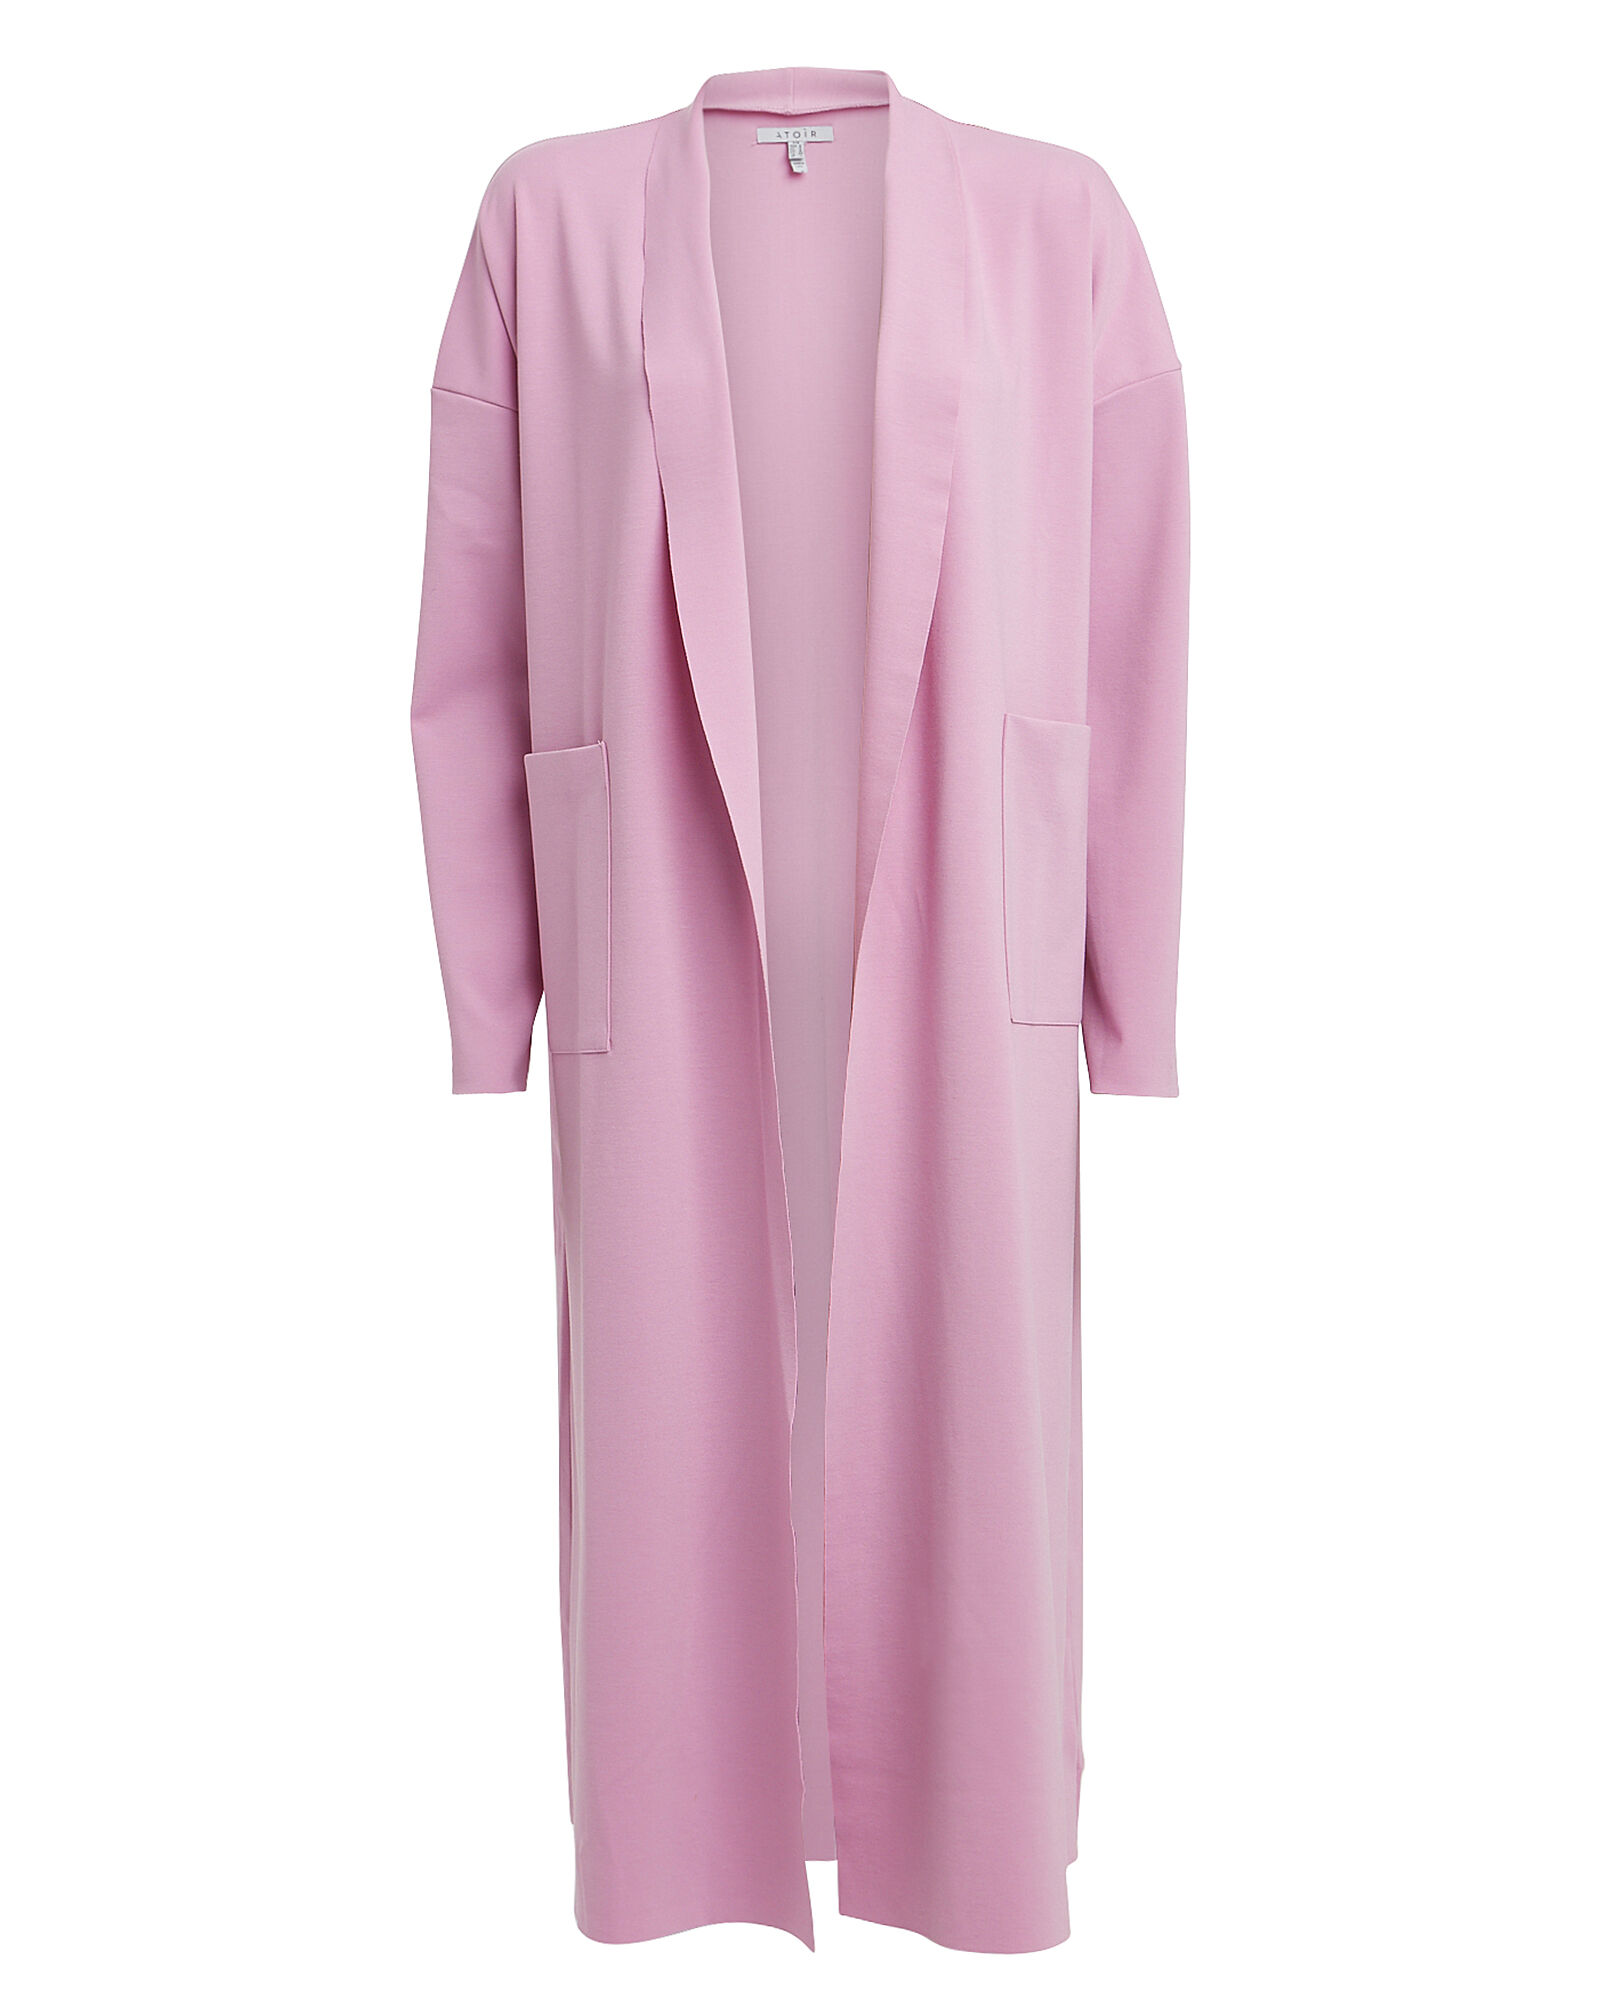 Satin Open Front Overcoat, PINK, hi-res